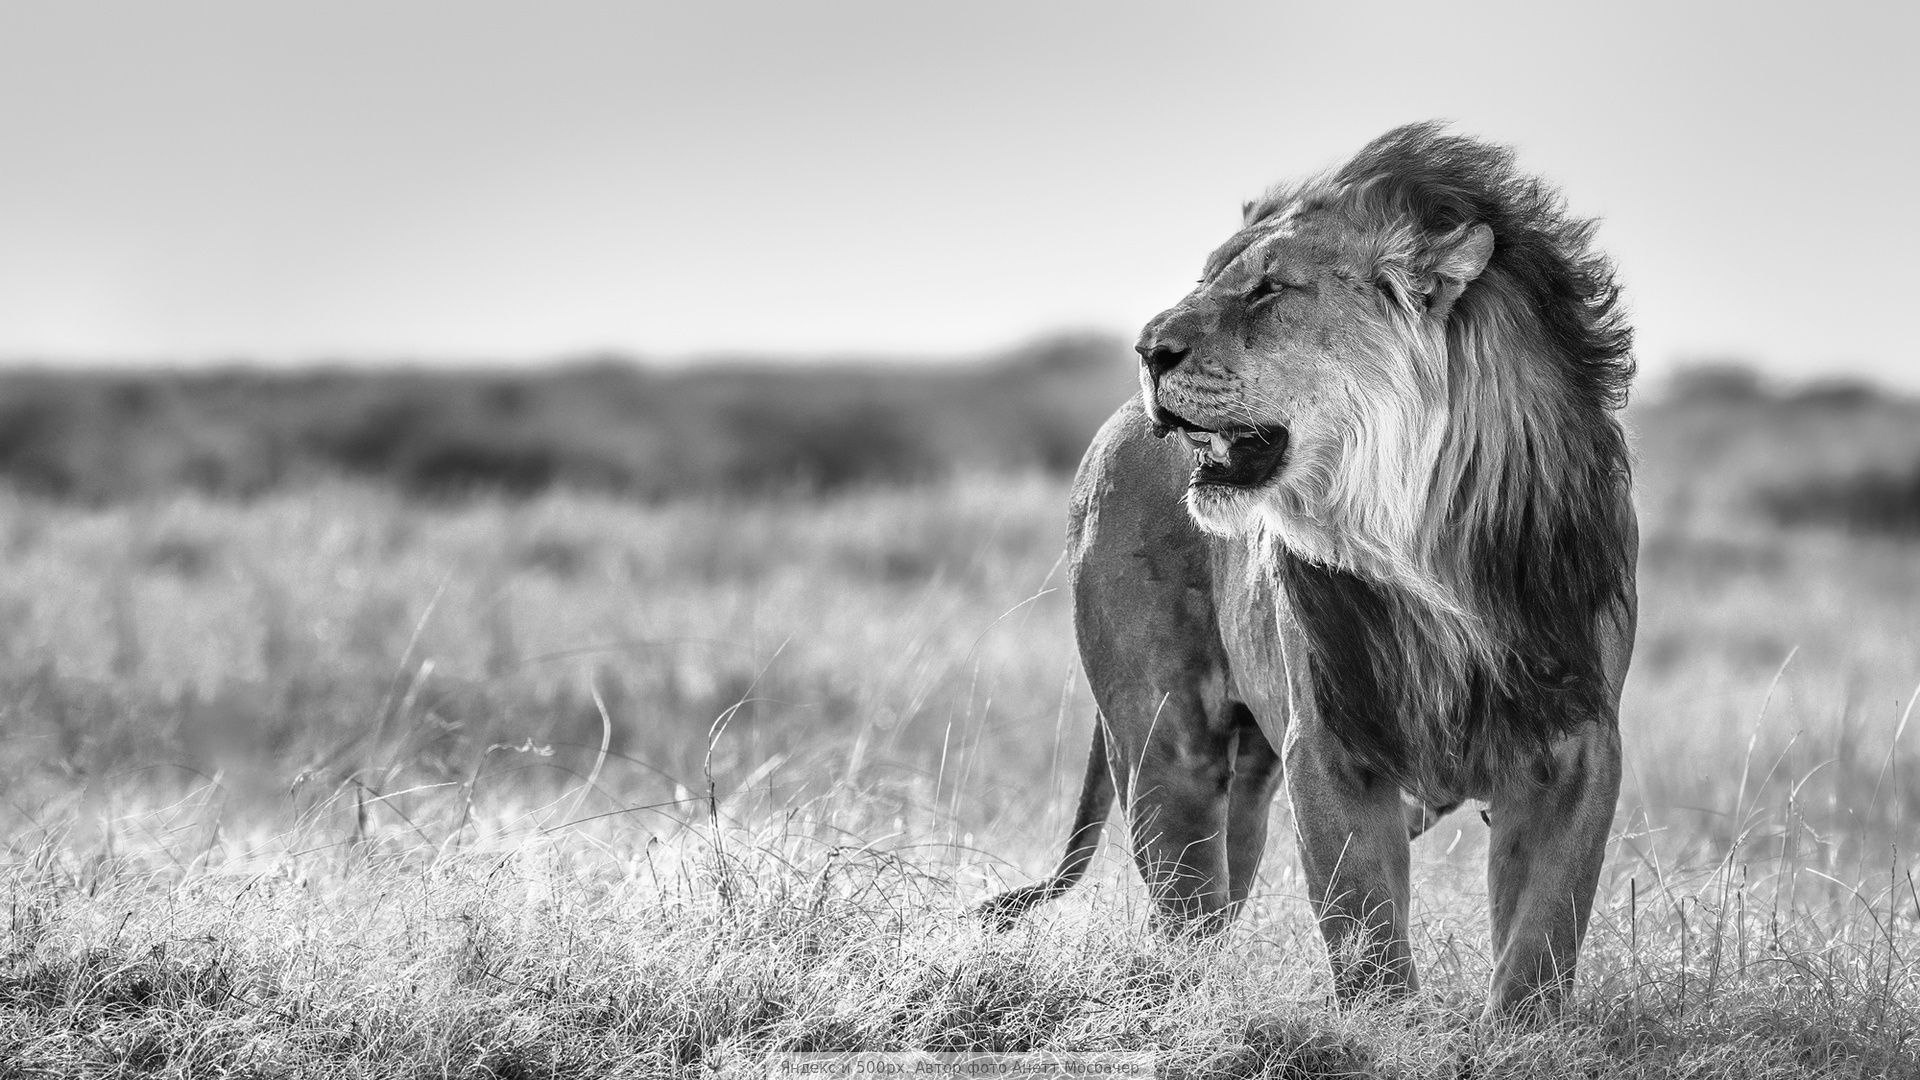 Lion Black And White Animal Wallpaper Picture